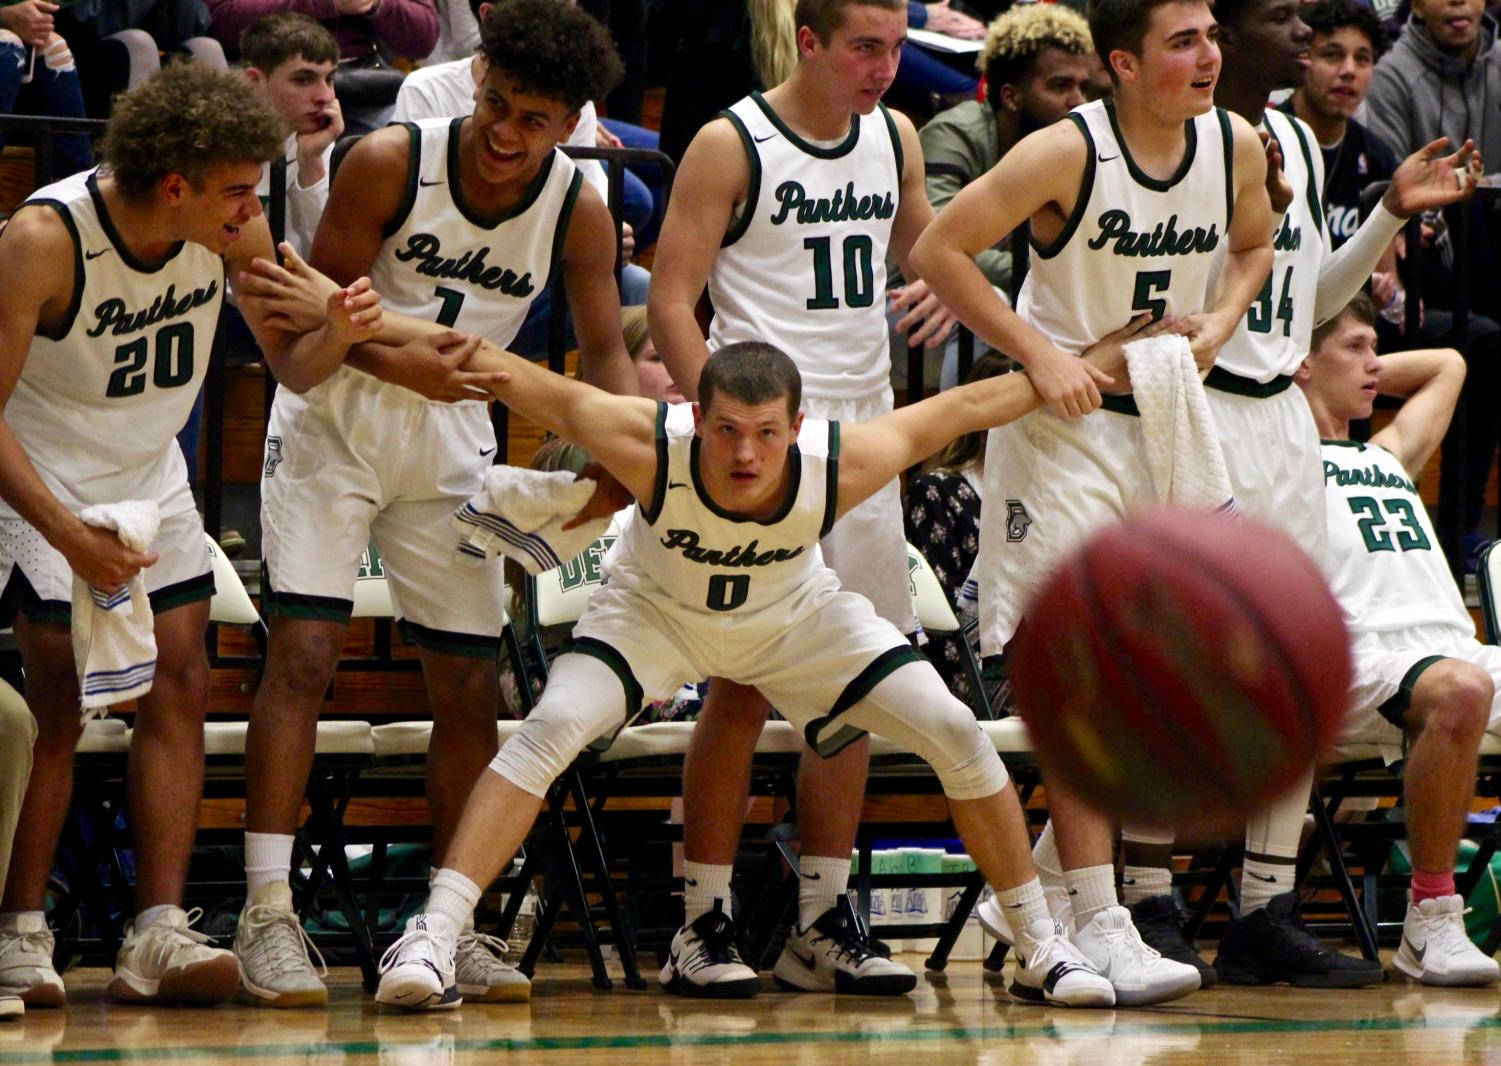 The team holds back junior Dax Benway as he gets excited in the final minutes of the game